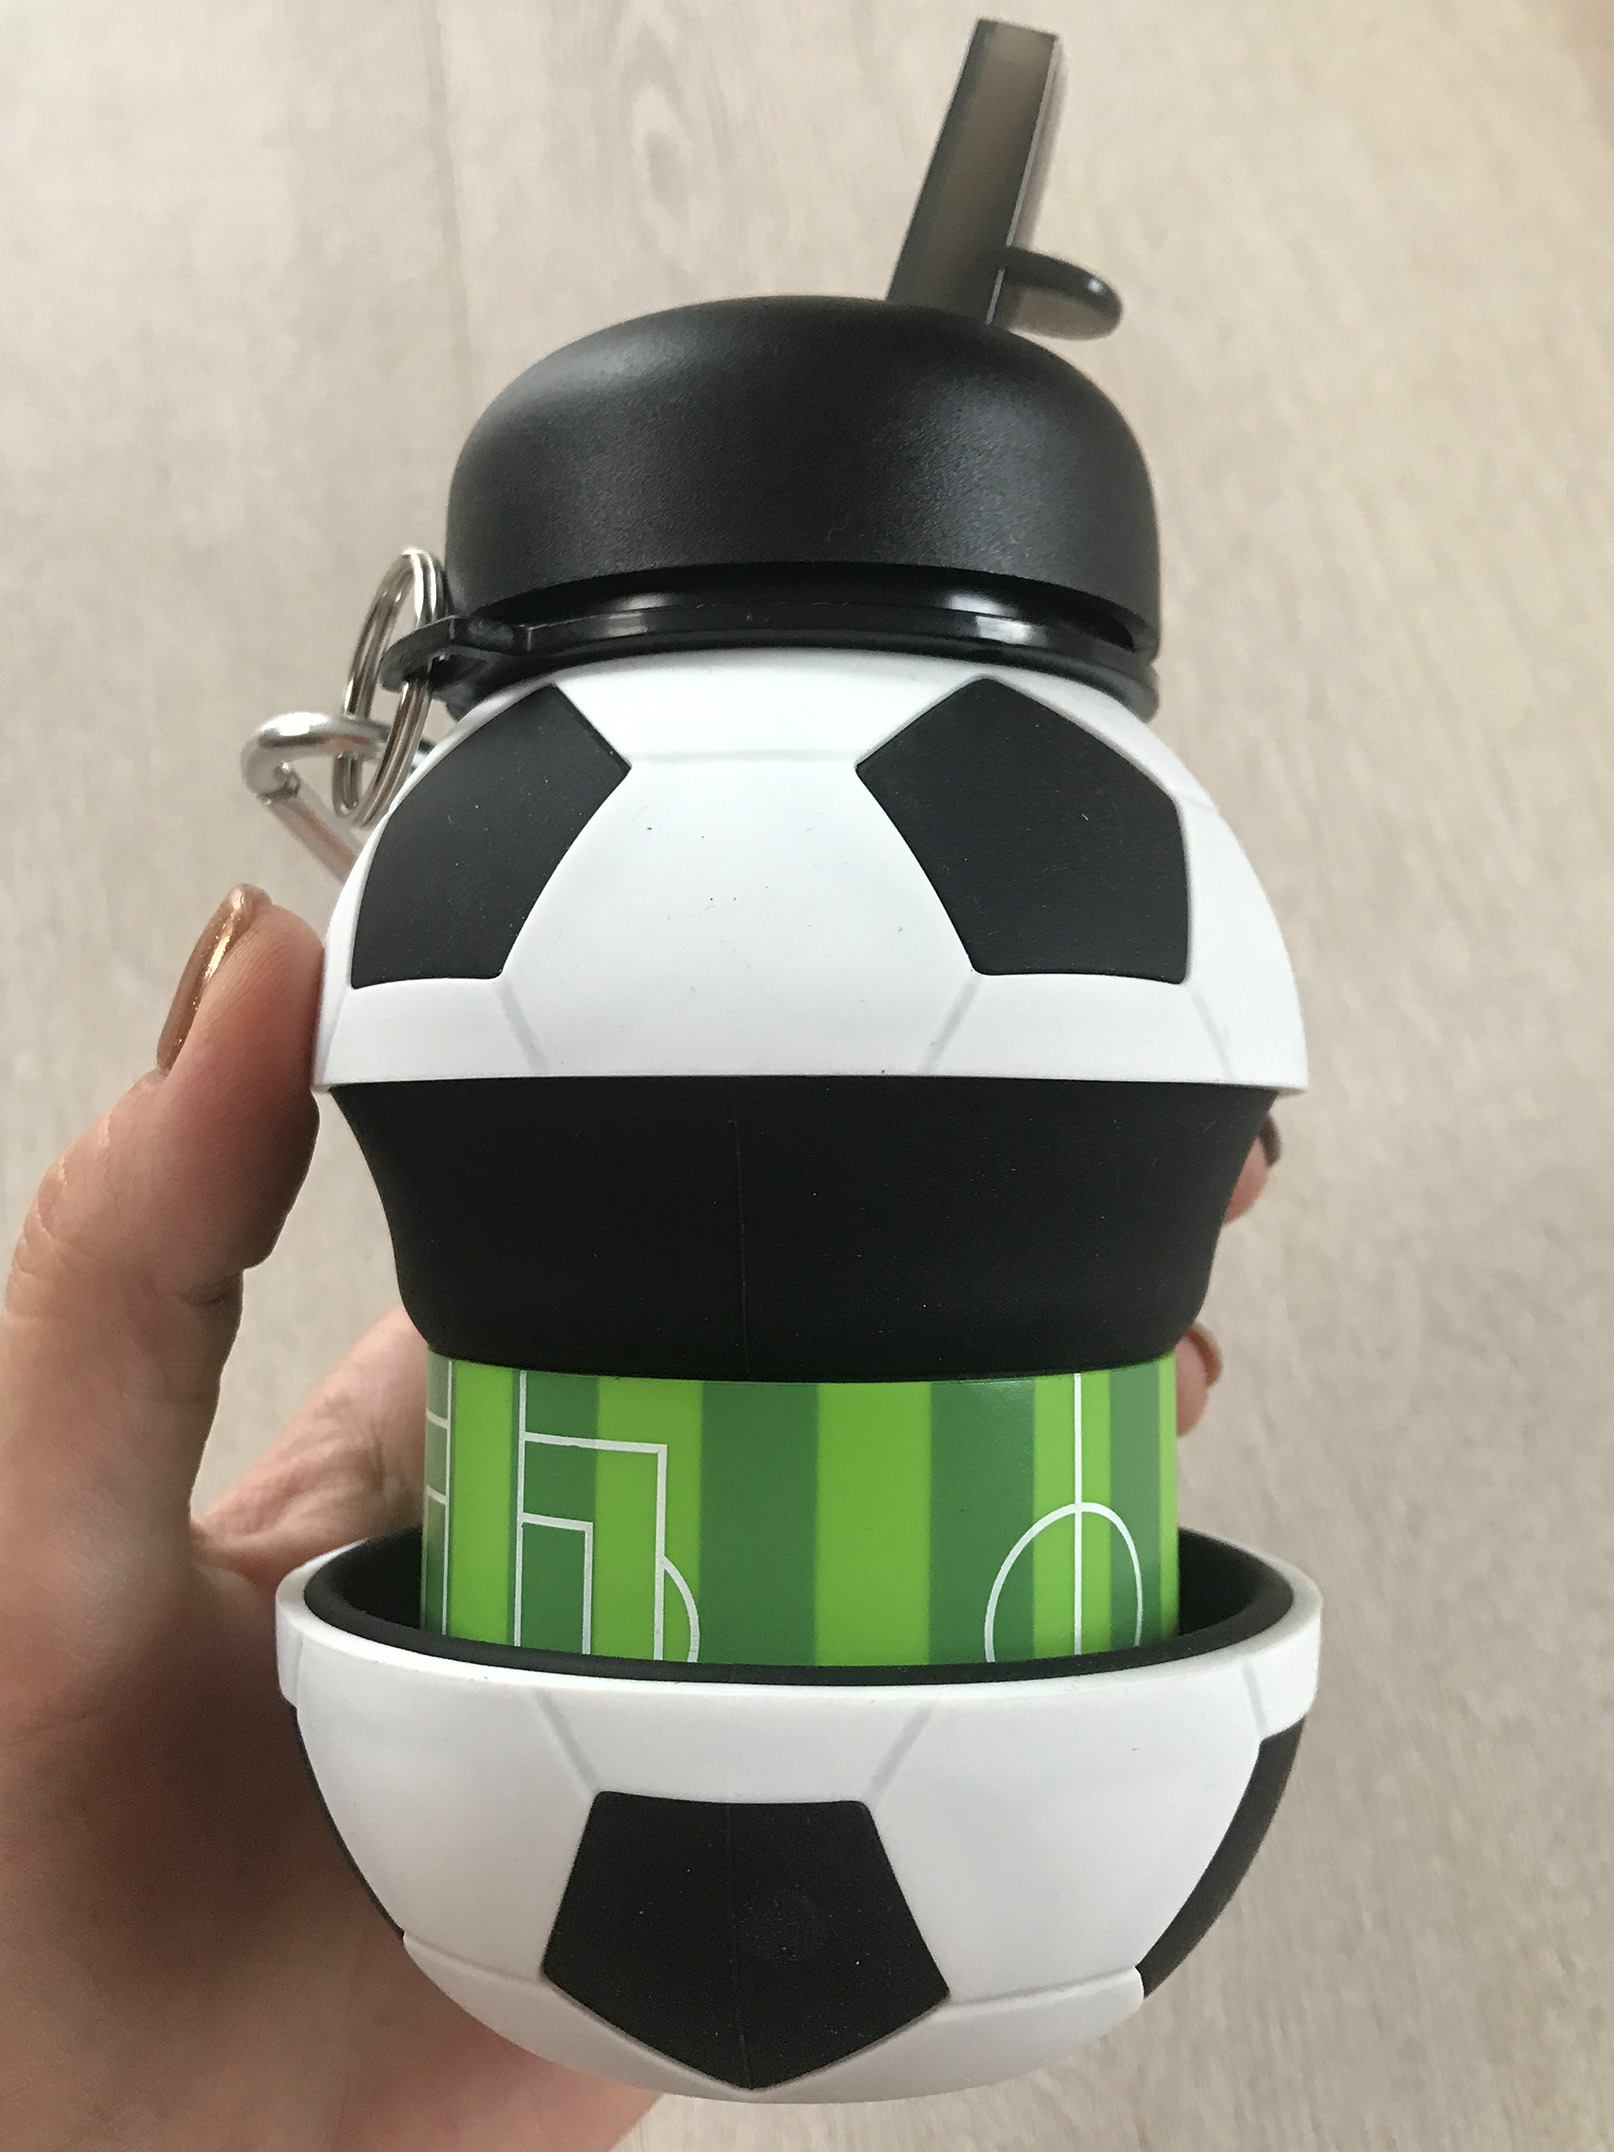 Novelty Football Sports Water Bottle with Straw Foldable Collapsible Travel Silicone My Bottles Innovating Camping 550ml  H1224|Water Bottles| |  - AliExpress